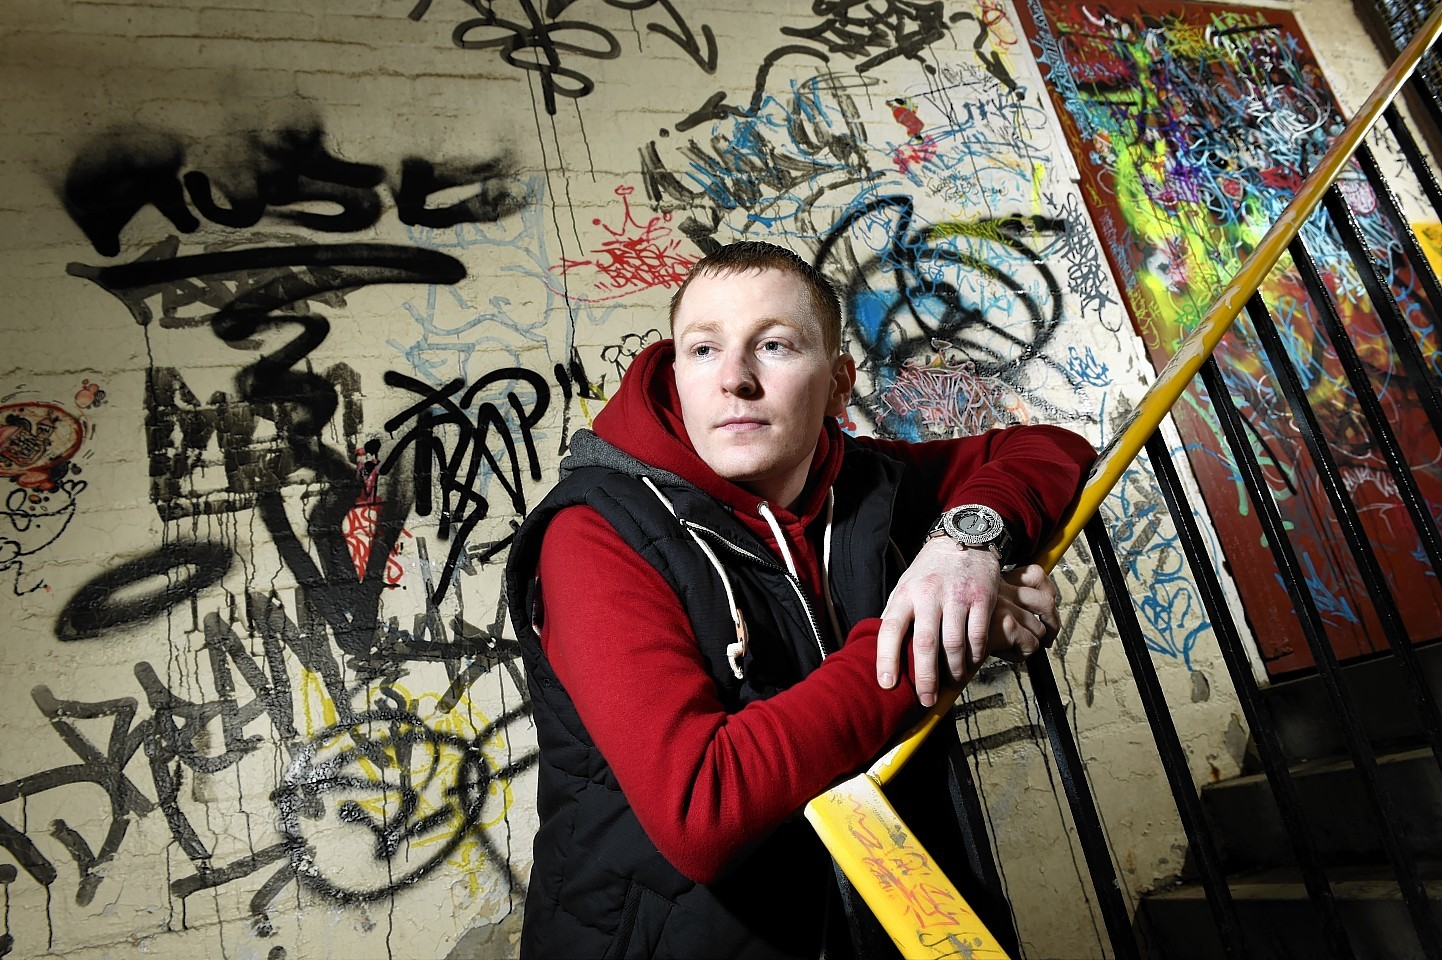 Peter Macleod says rapping has saved his life